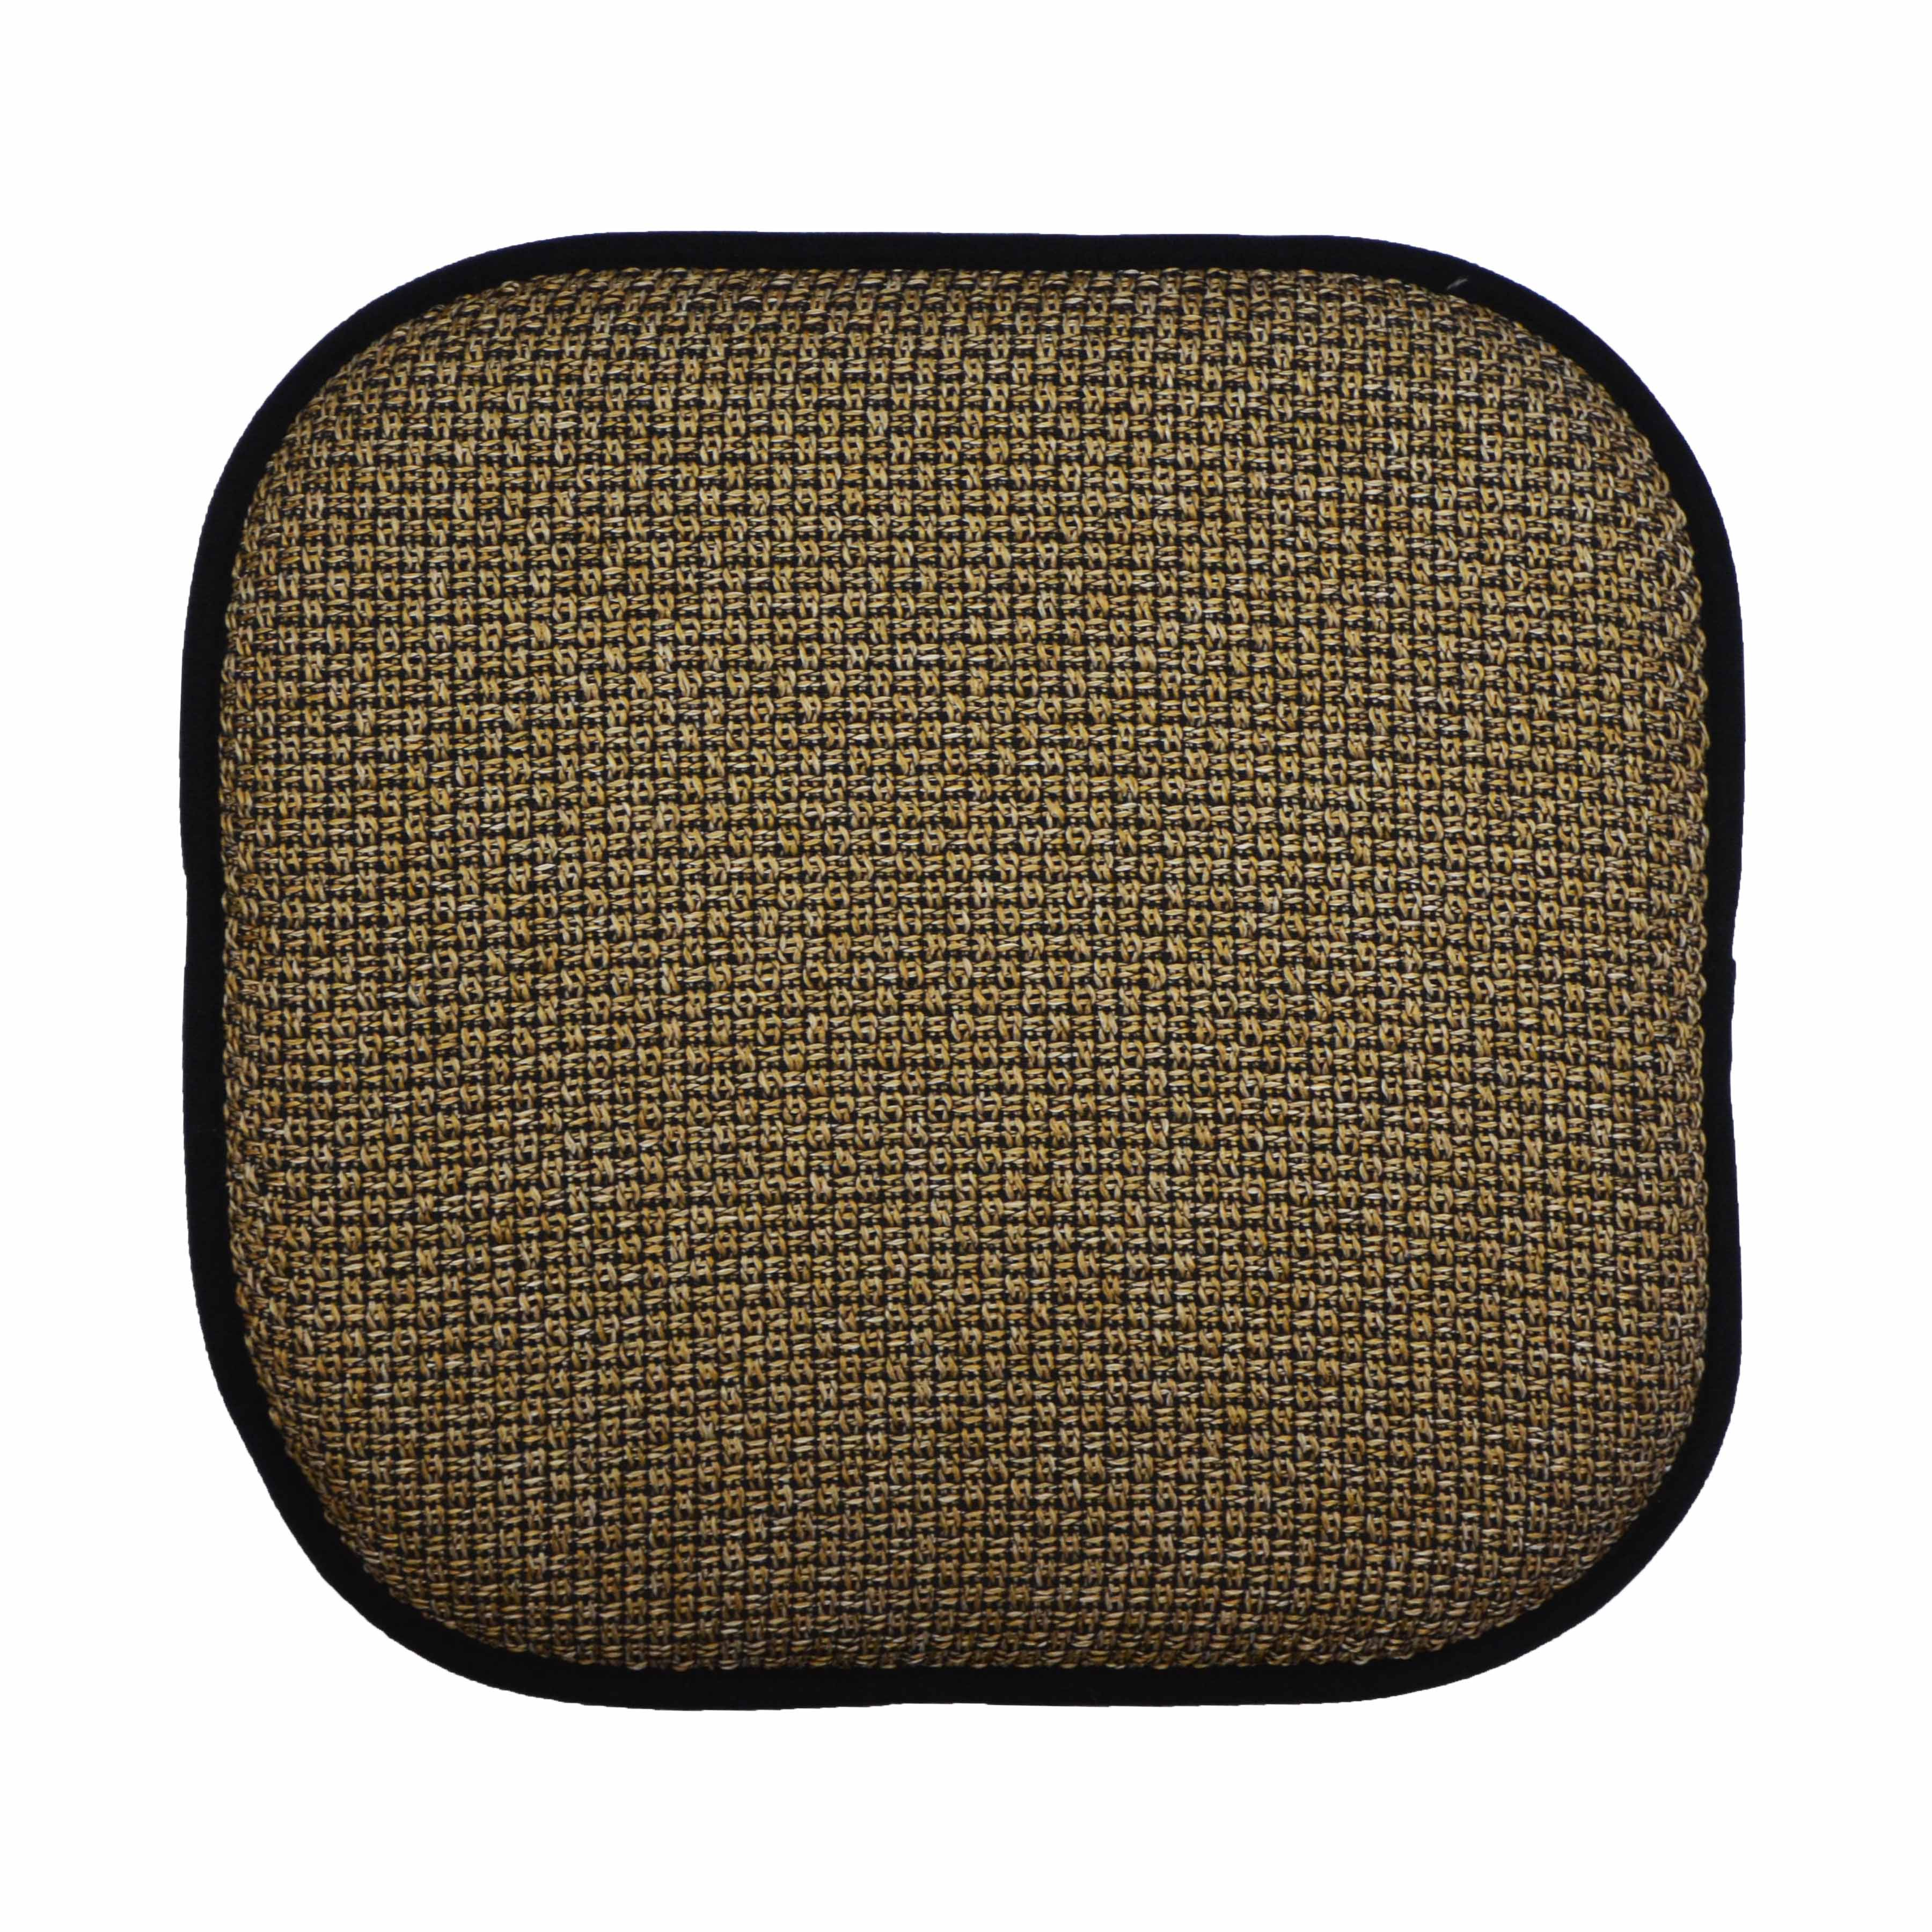 Memory Foam Chair Pad Seat Cushion with Non Slip Backing 16x16